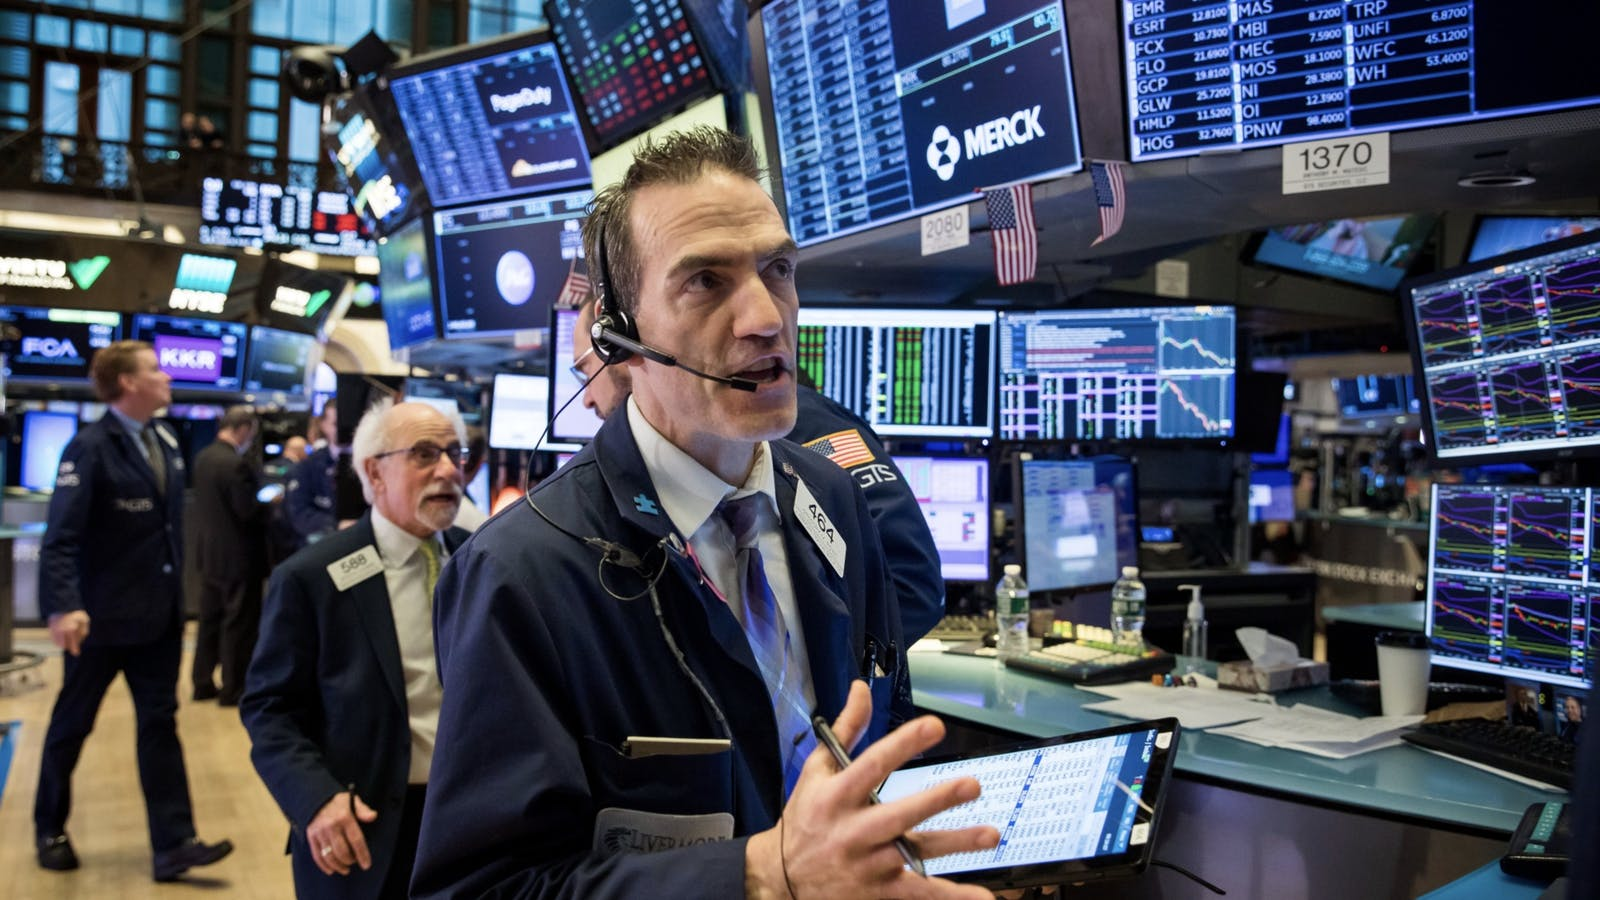 Traders on the floor of the New York Stock Exchange. Photo by Bloomberg.